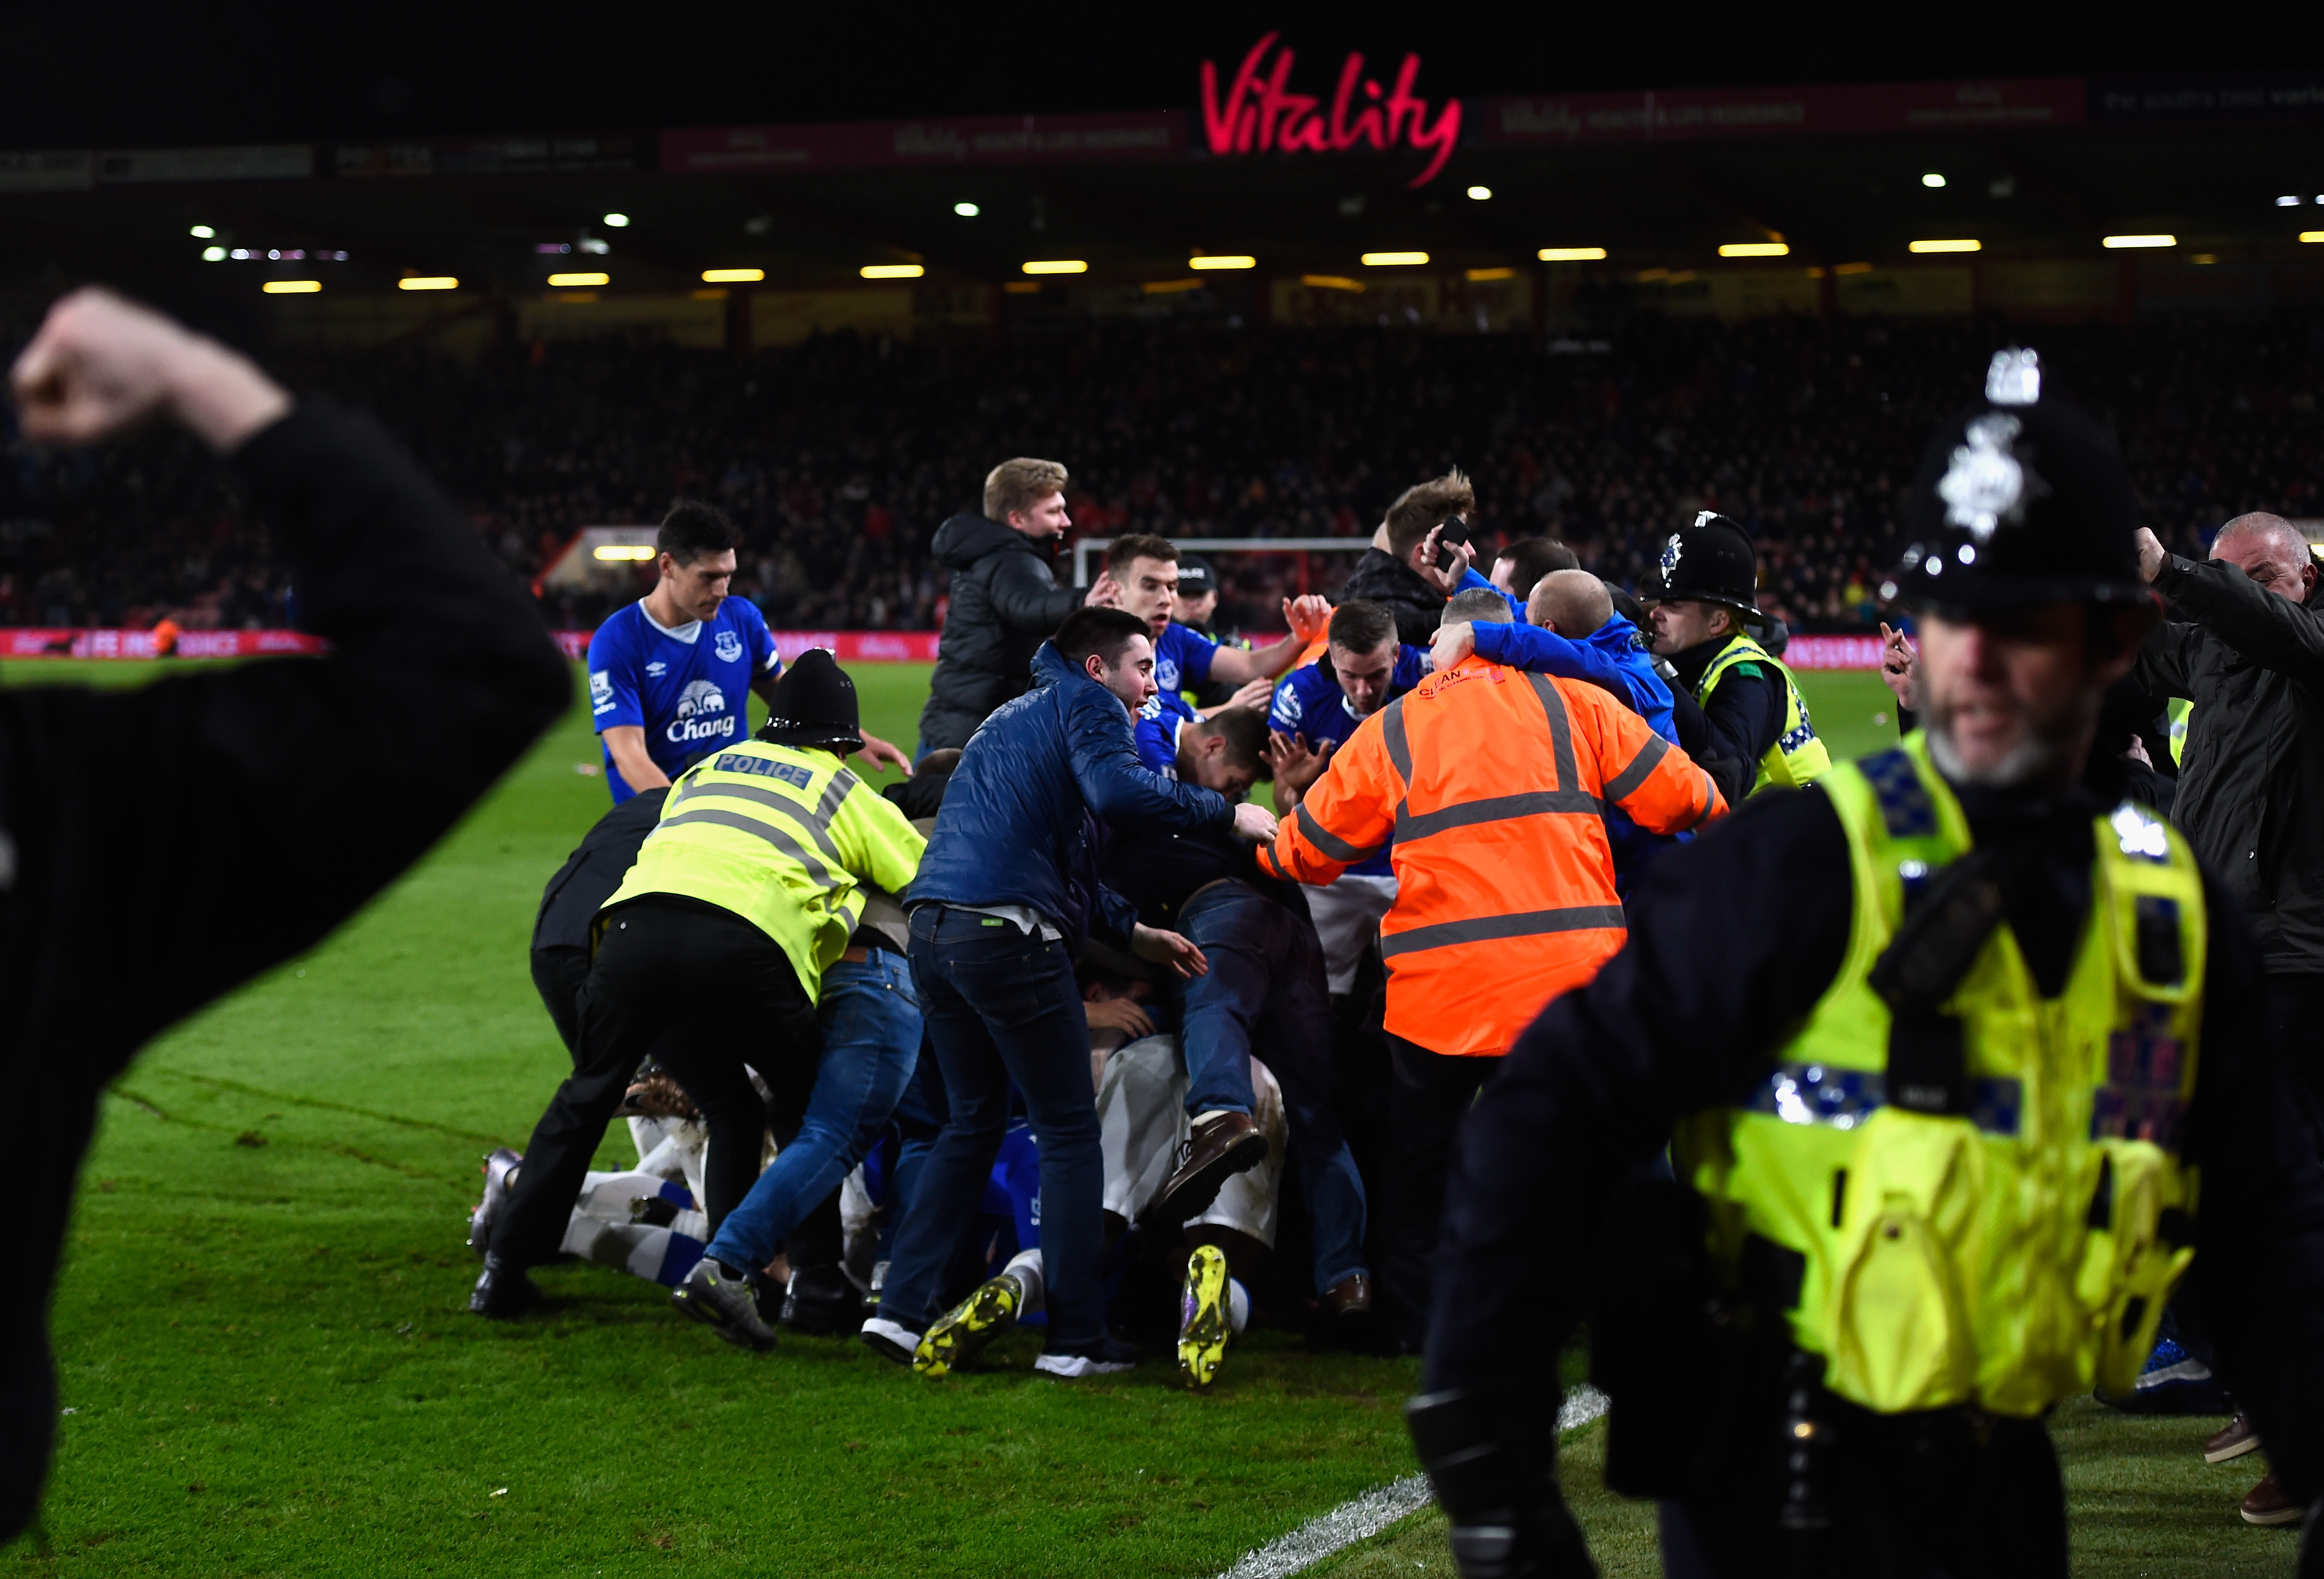 I never want to see an Everton pitch invasion again. Ever.